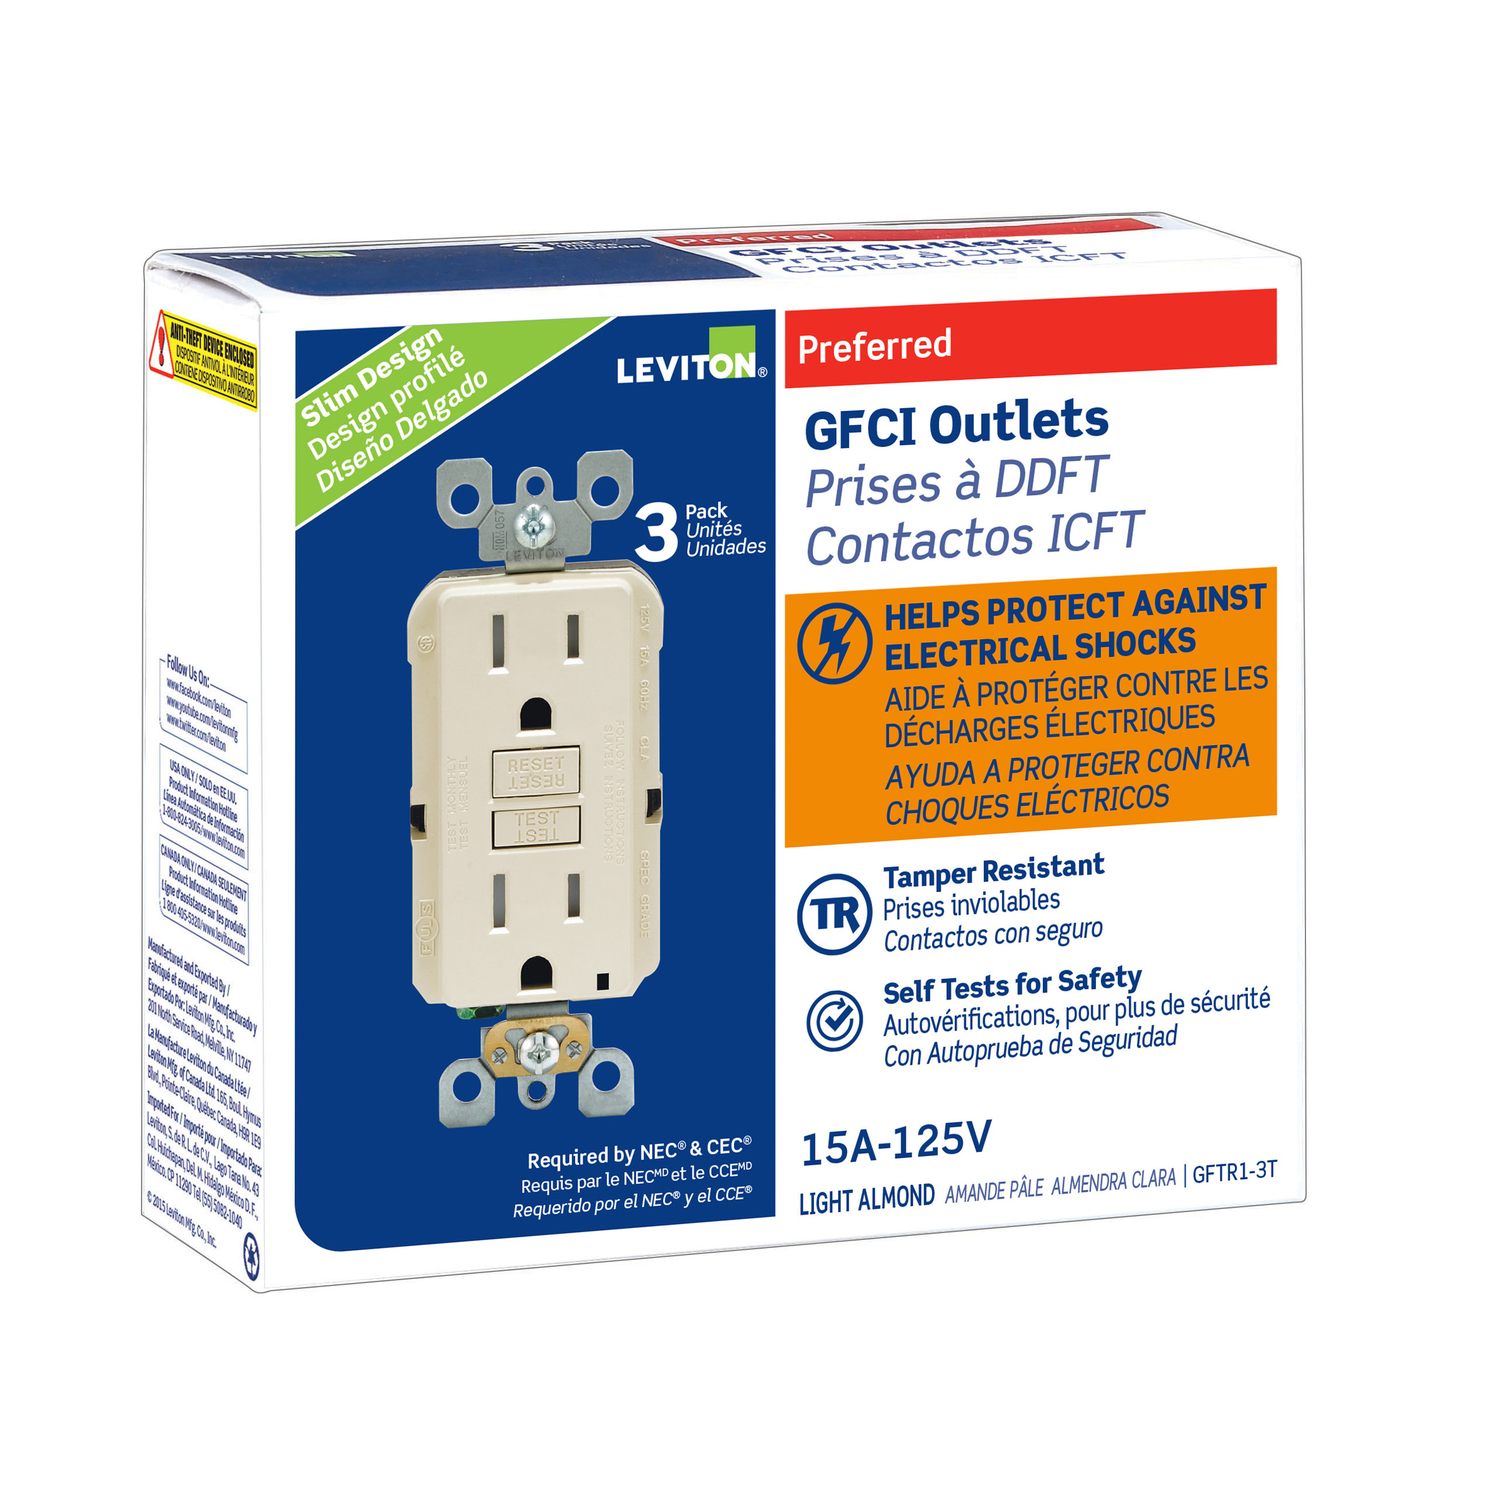 Leviton 15 Amps 125 Volt Light Almond Gfci Outlet 5